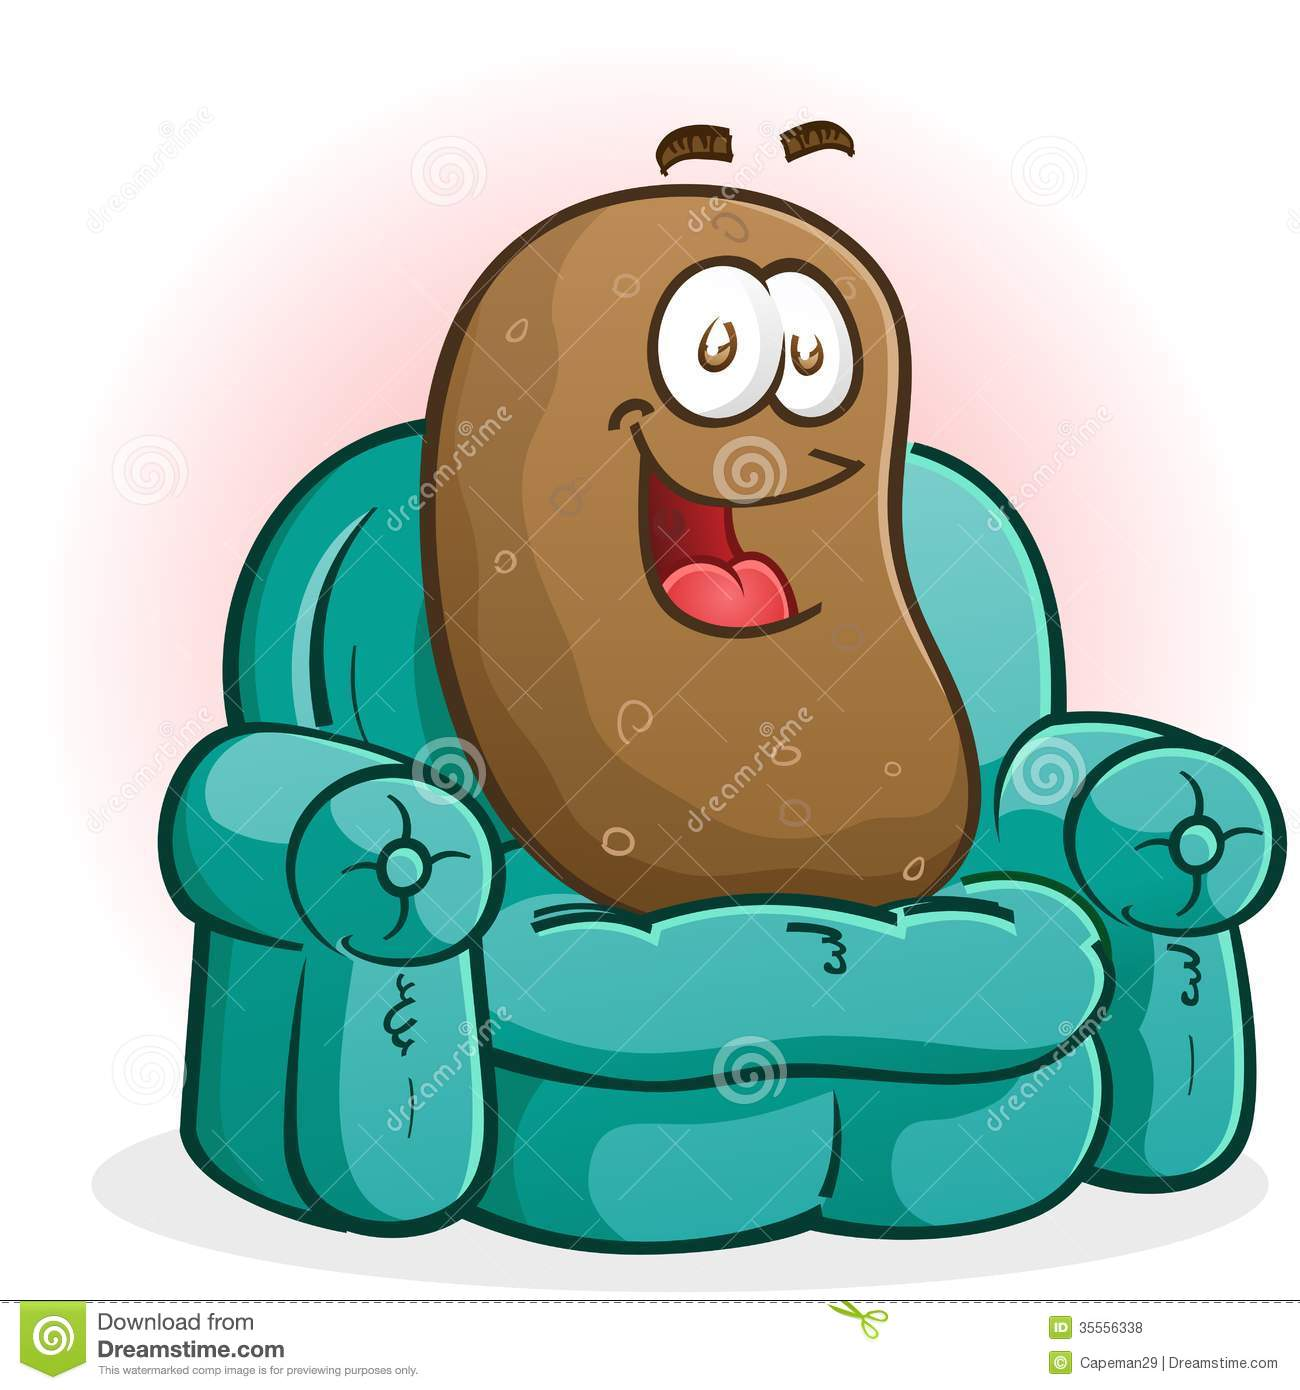 Couch Potato Cartoon Character Stock Vector Illustration Of Spud